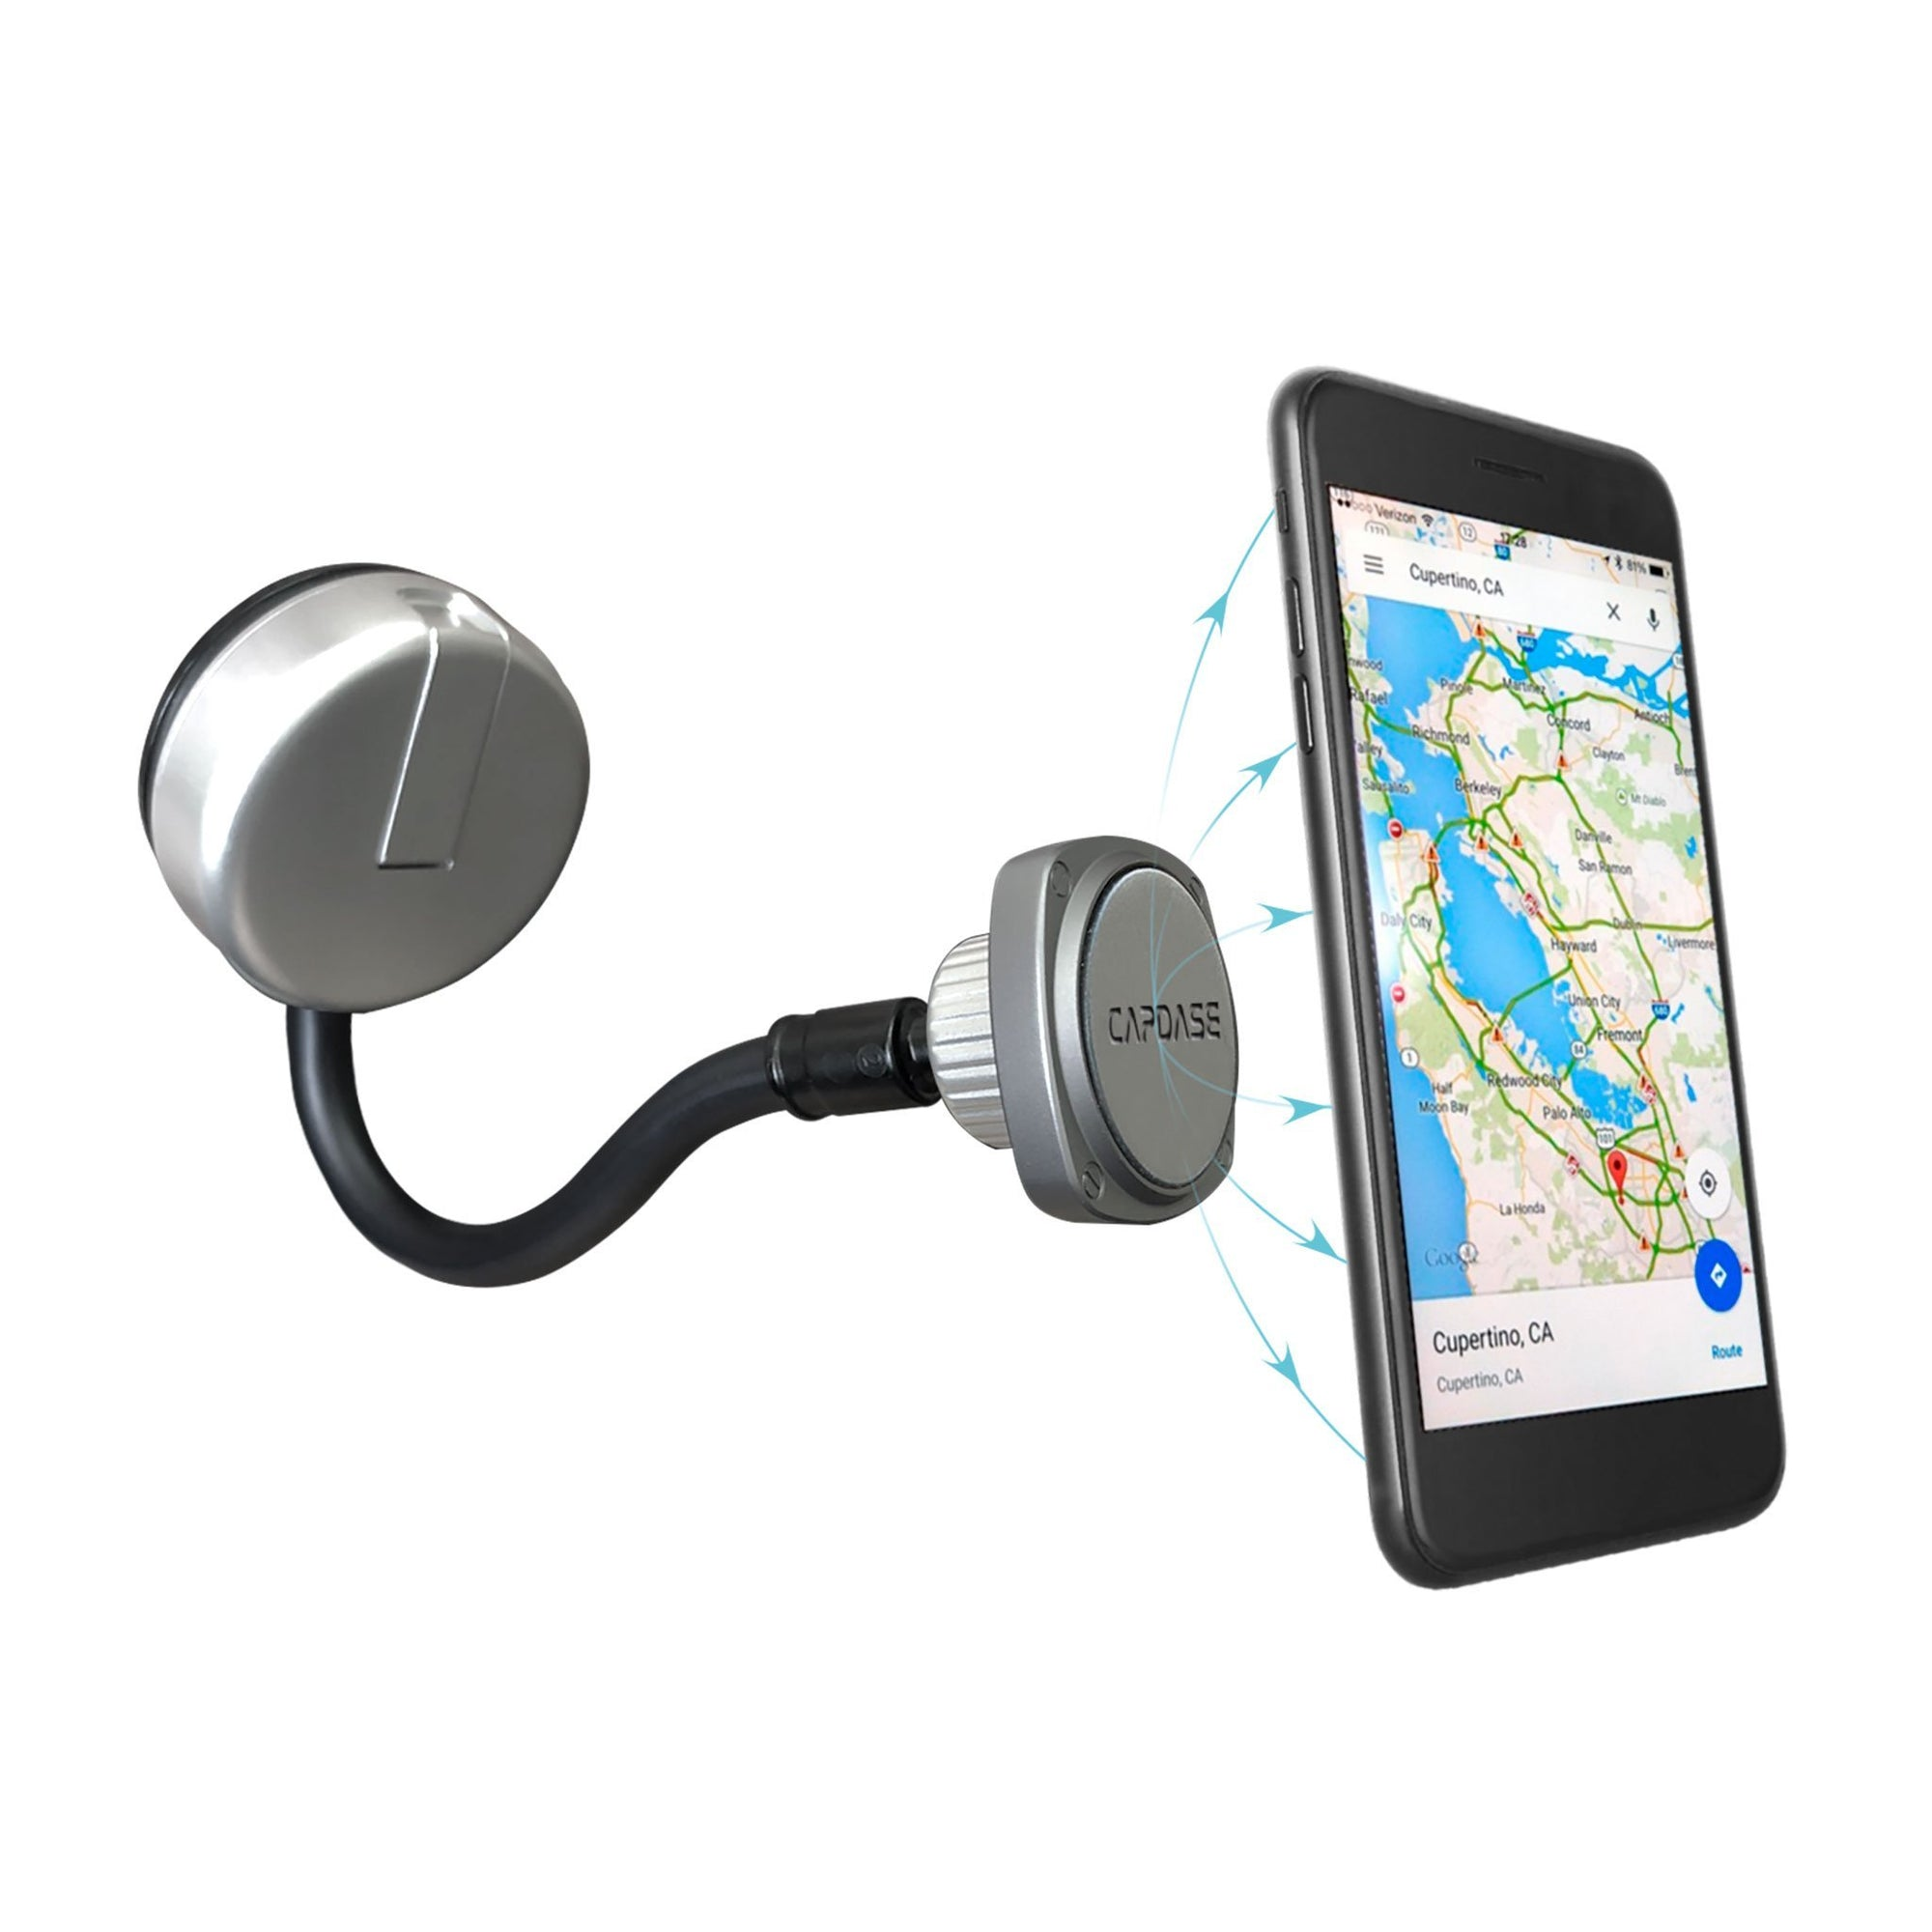 SQUARER Magnetic Car Mount Sunction Cup CHIC - Gooseneck Arm